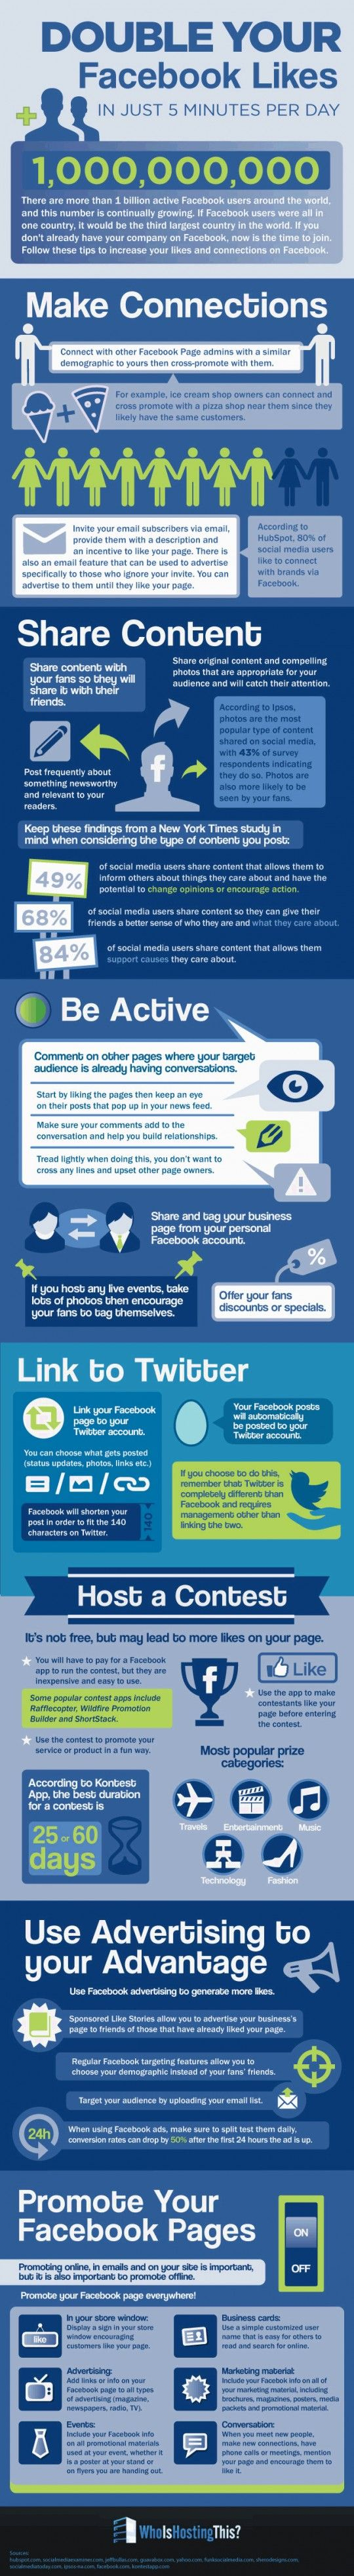 Double Your Facebook Likes in 10 Minutes a Day